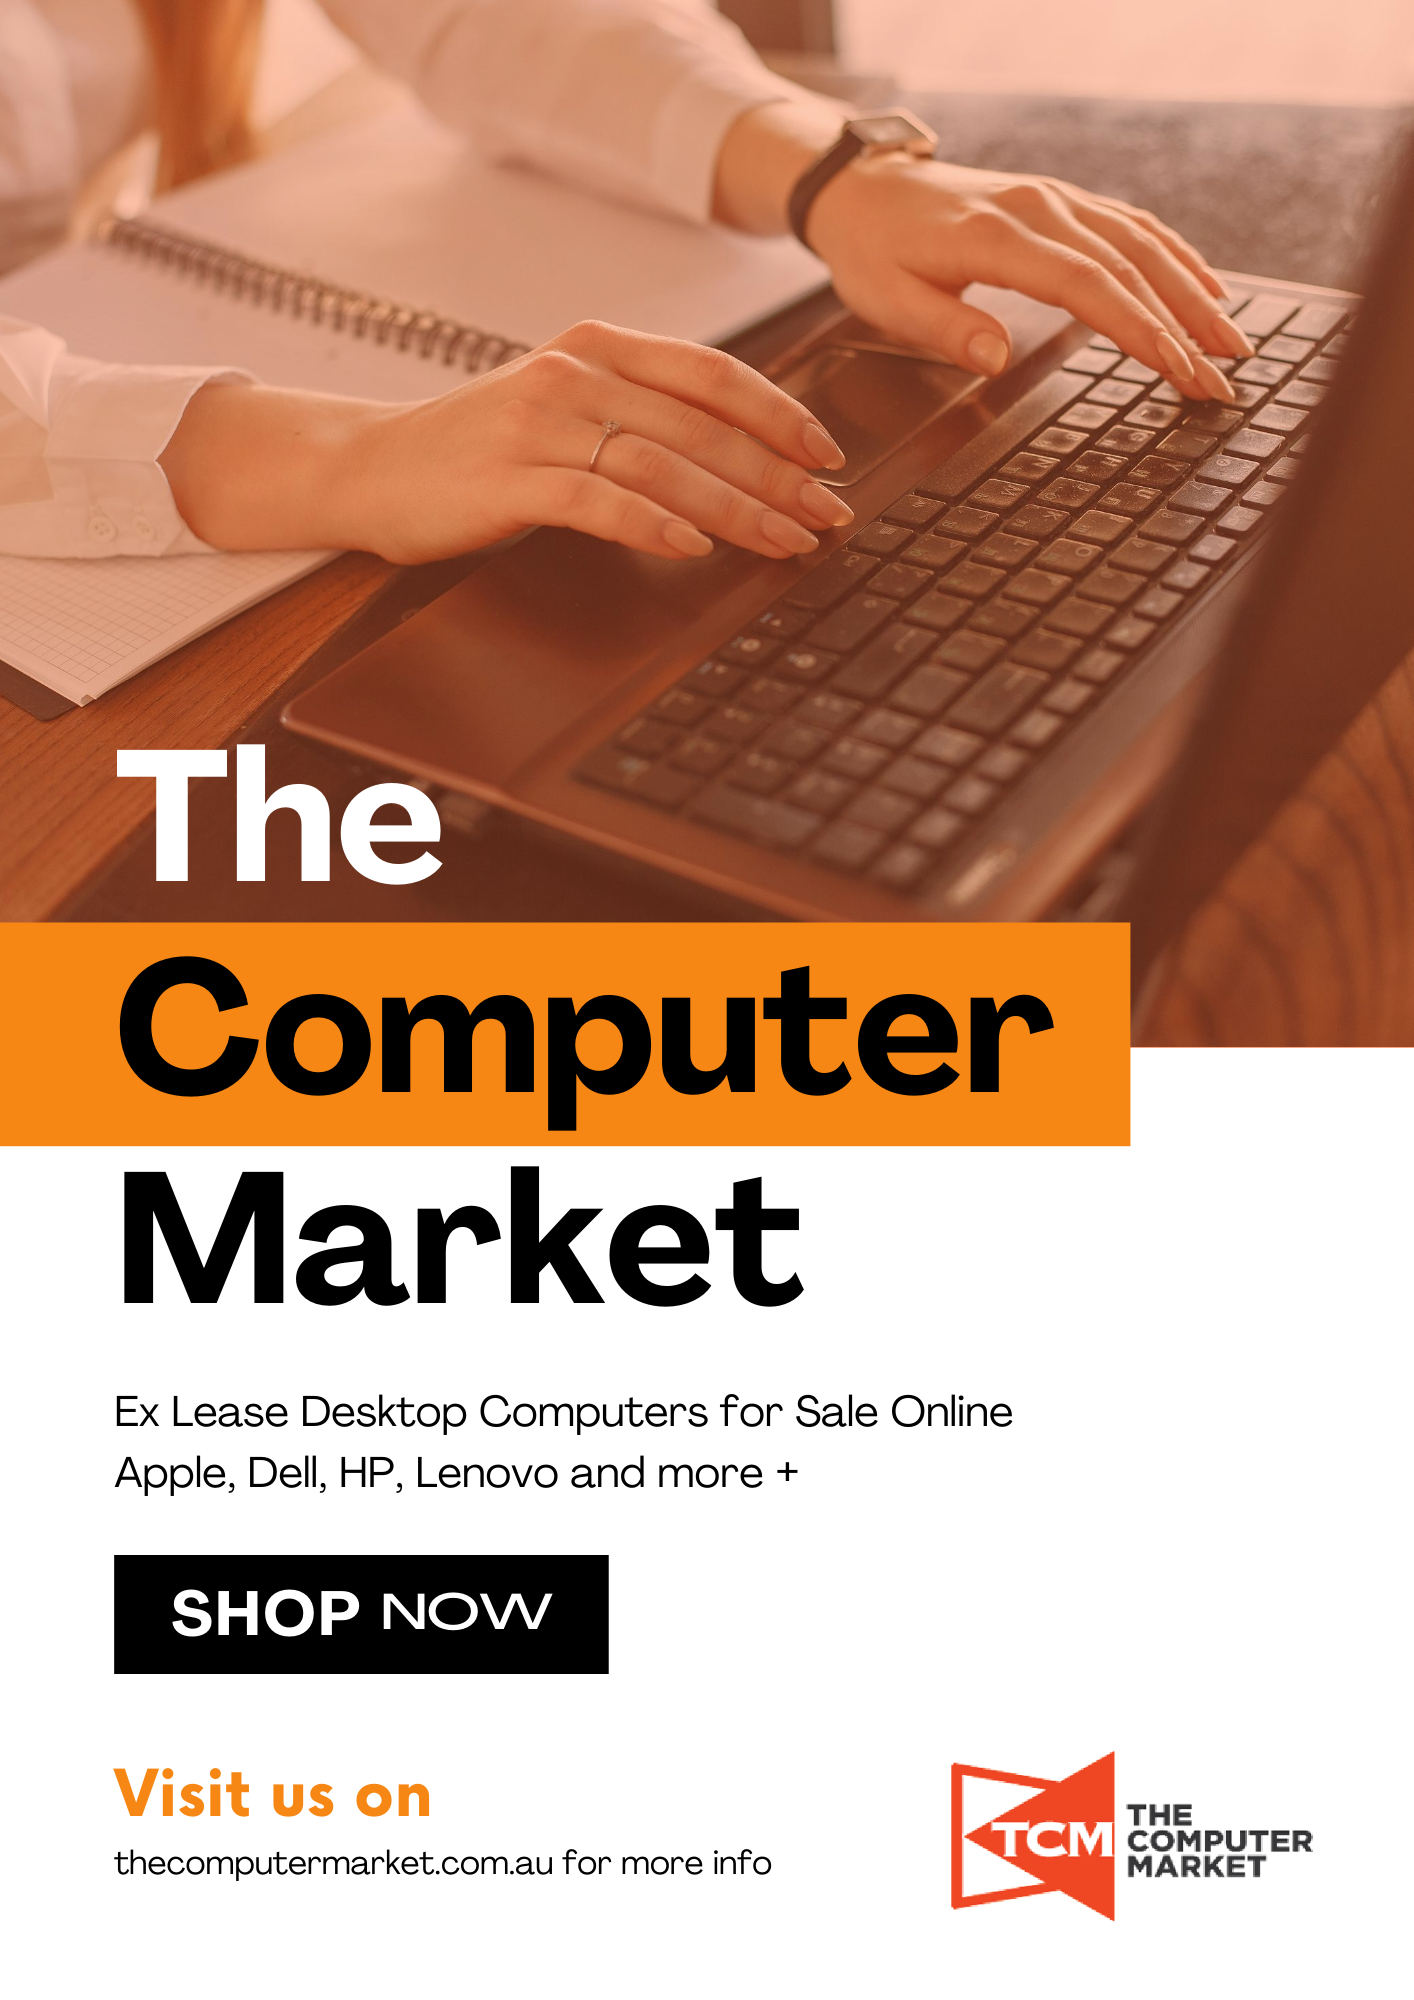 Ex Lease Desktop Computers For Sale Online In 2020 Computers For Sale Desktop Computers For Sale Technology Consulting